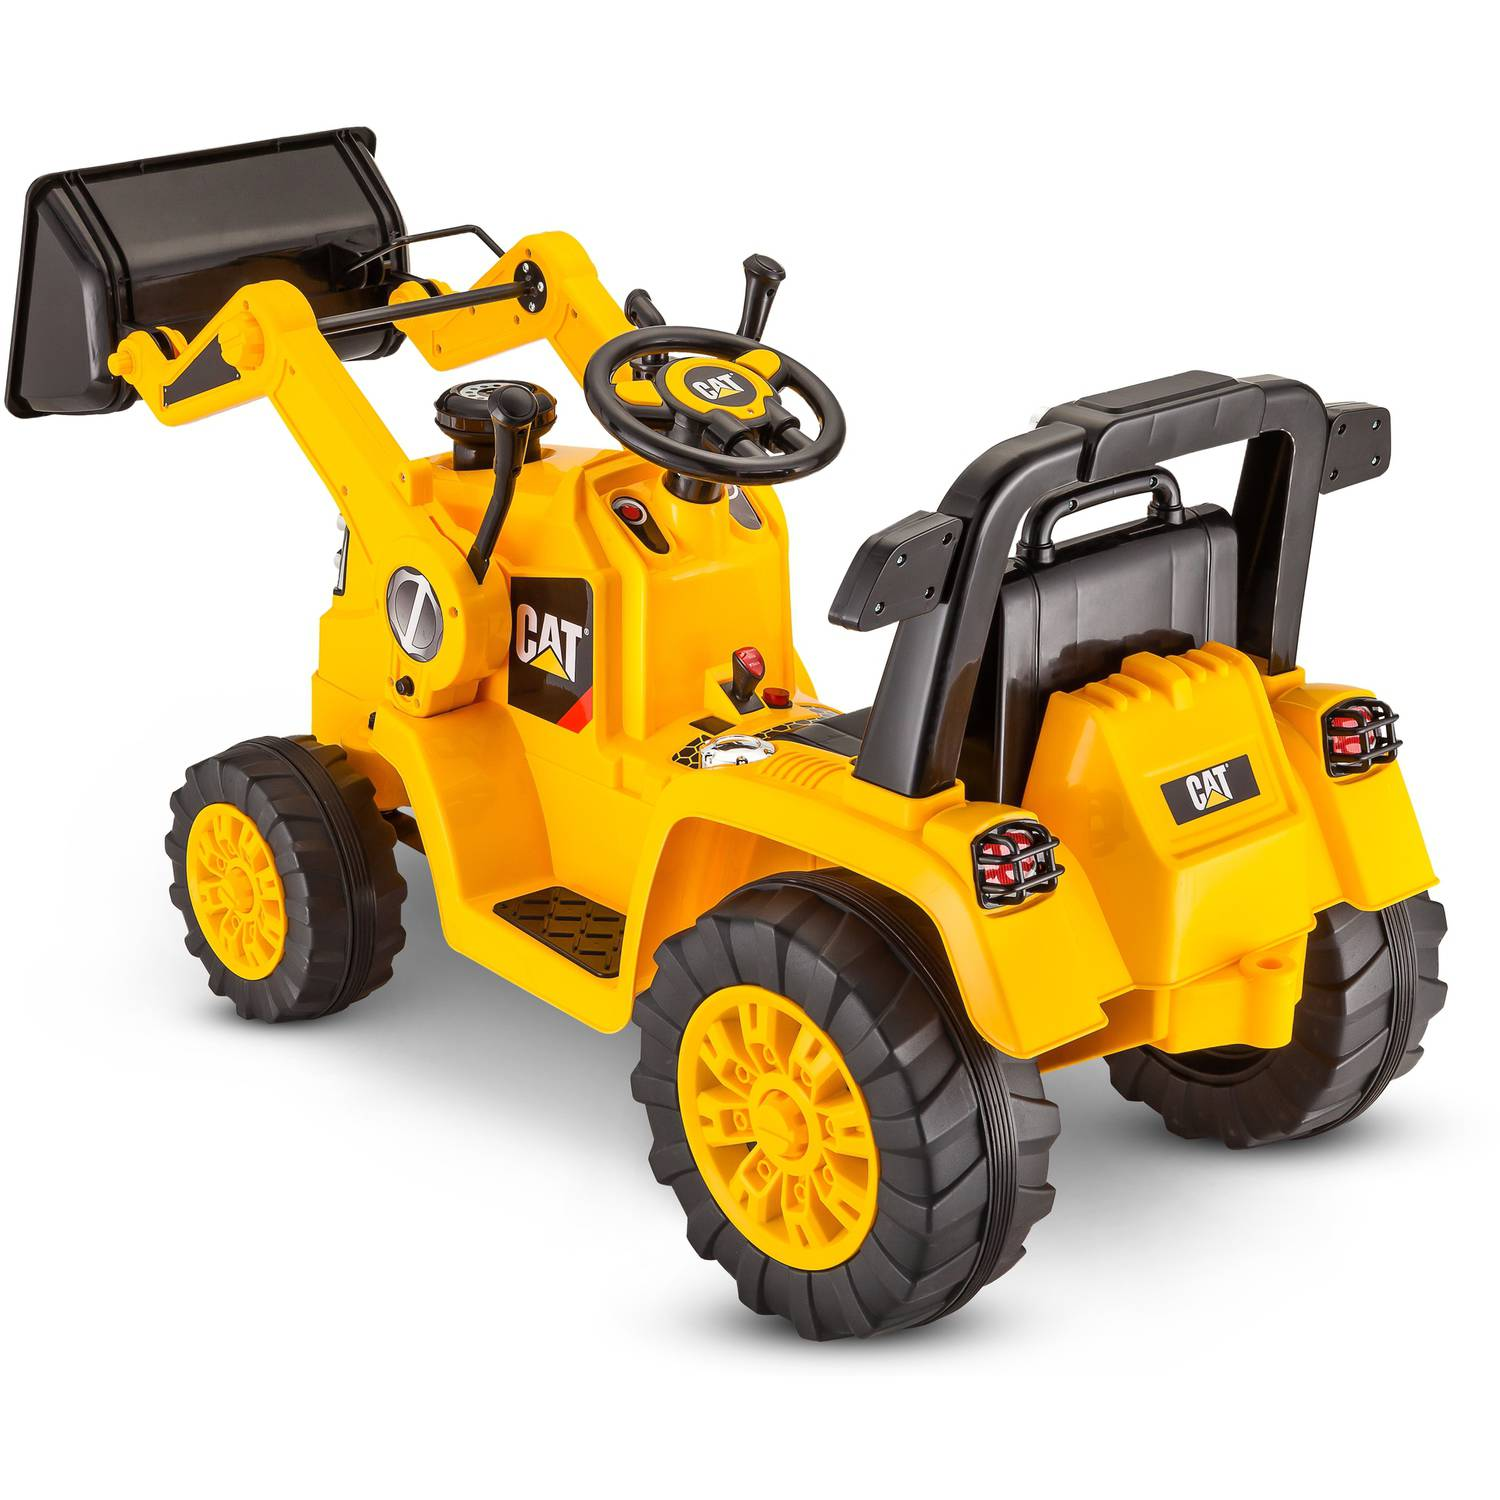 kidtrax cat bulldozer tractor 6v battery powered ride on yellow kids electric